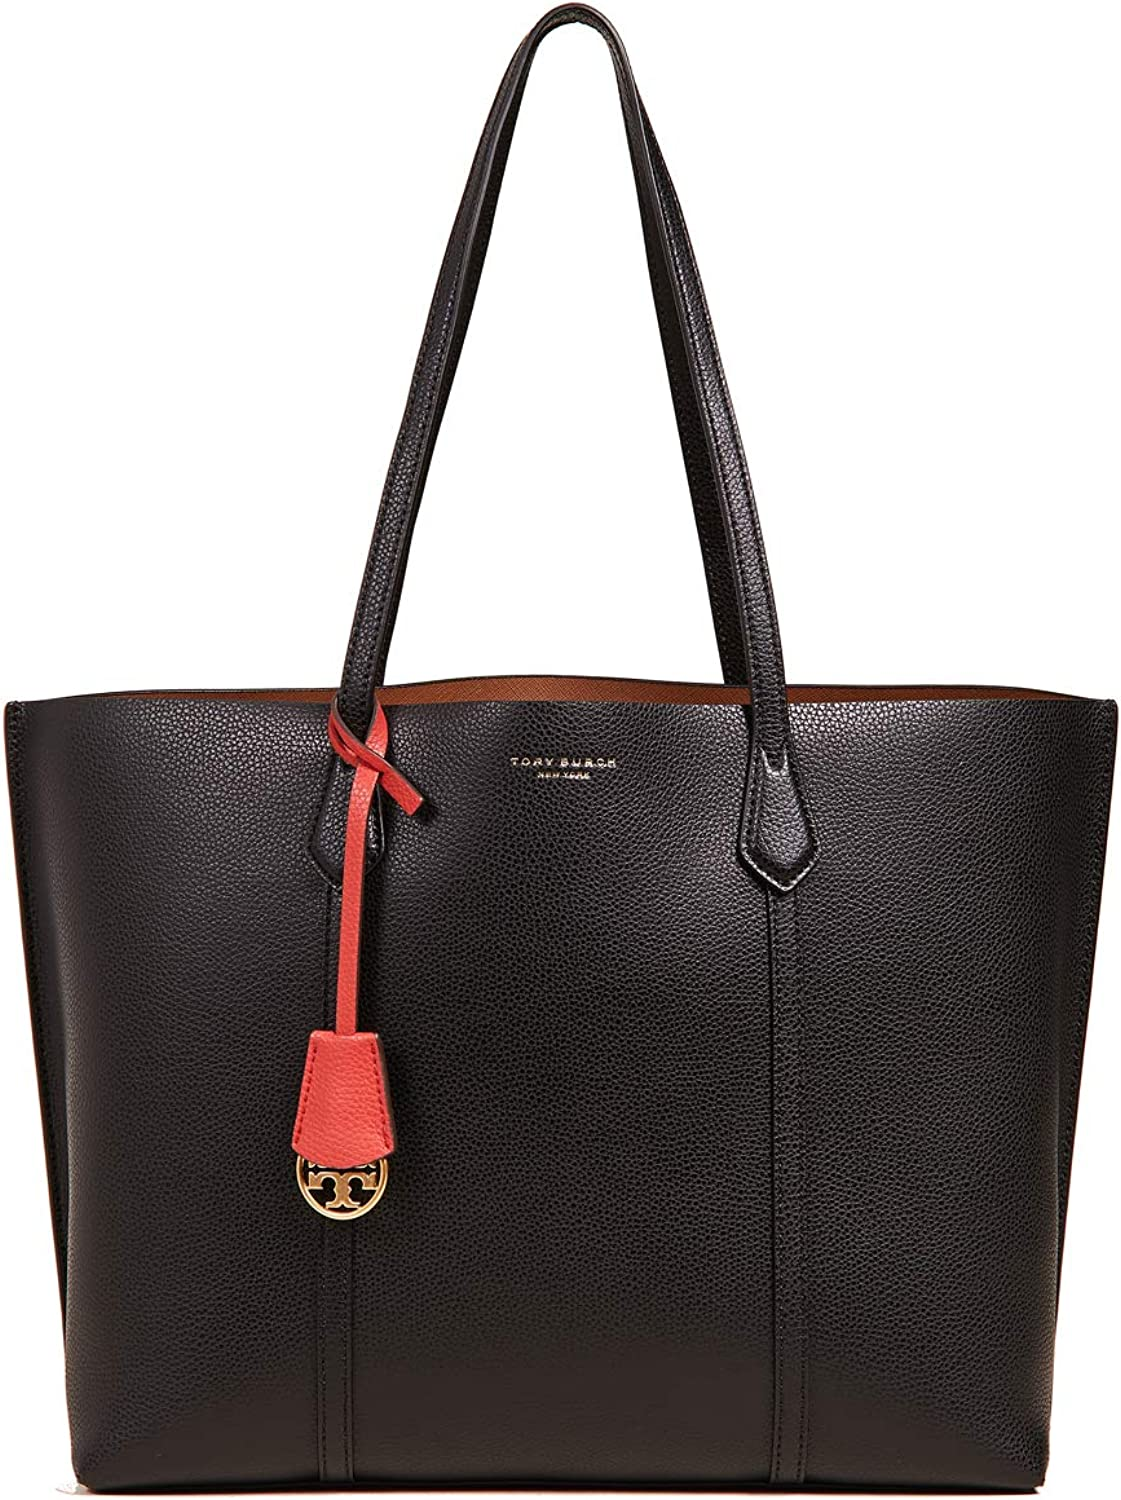 Top 6 Tory Burch Laptop Bag